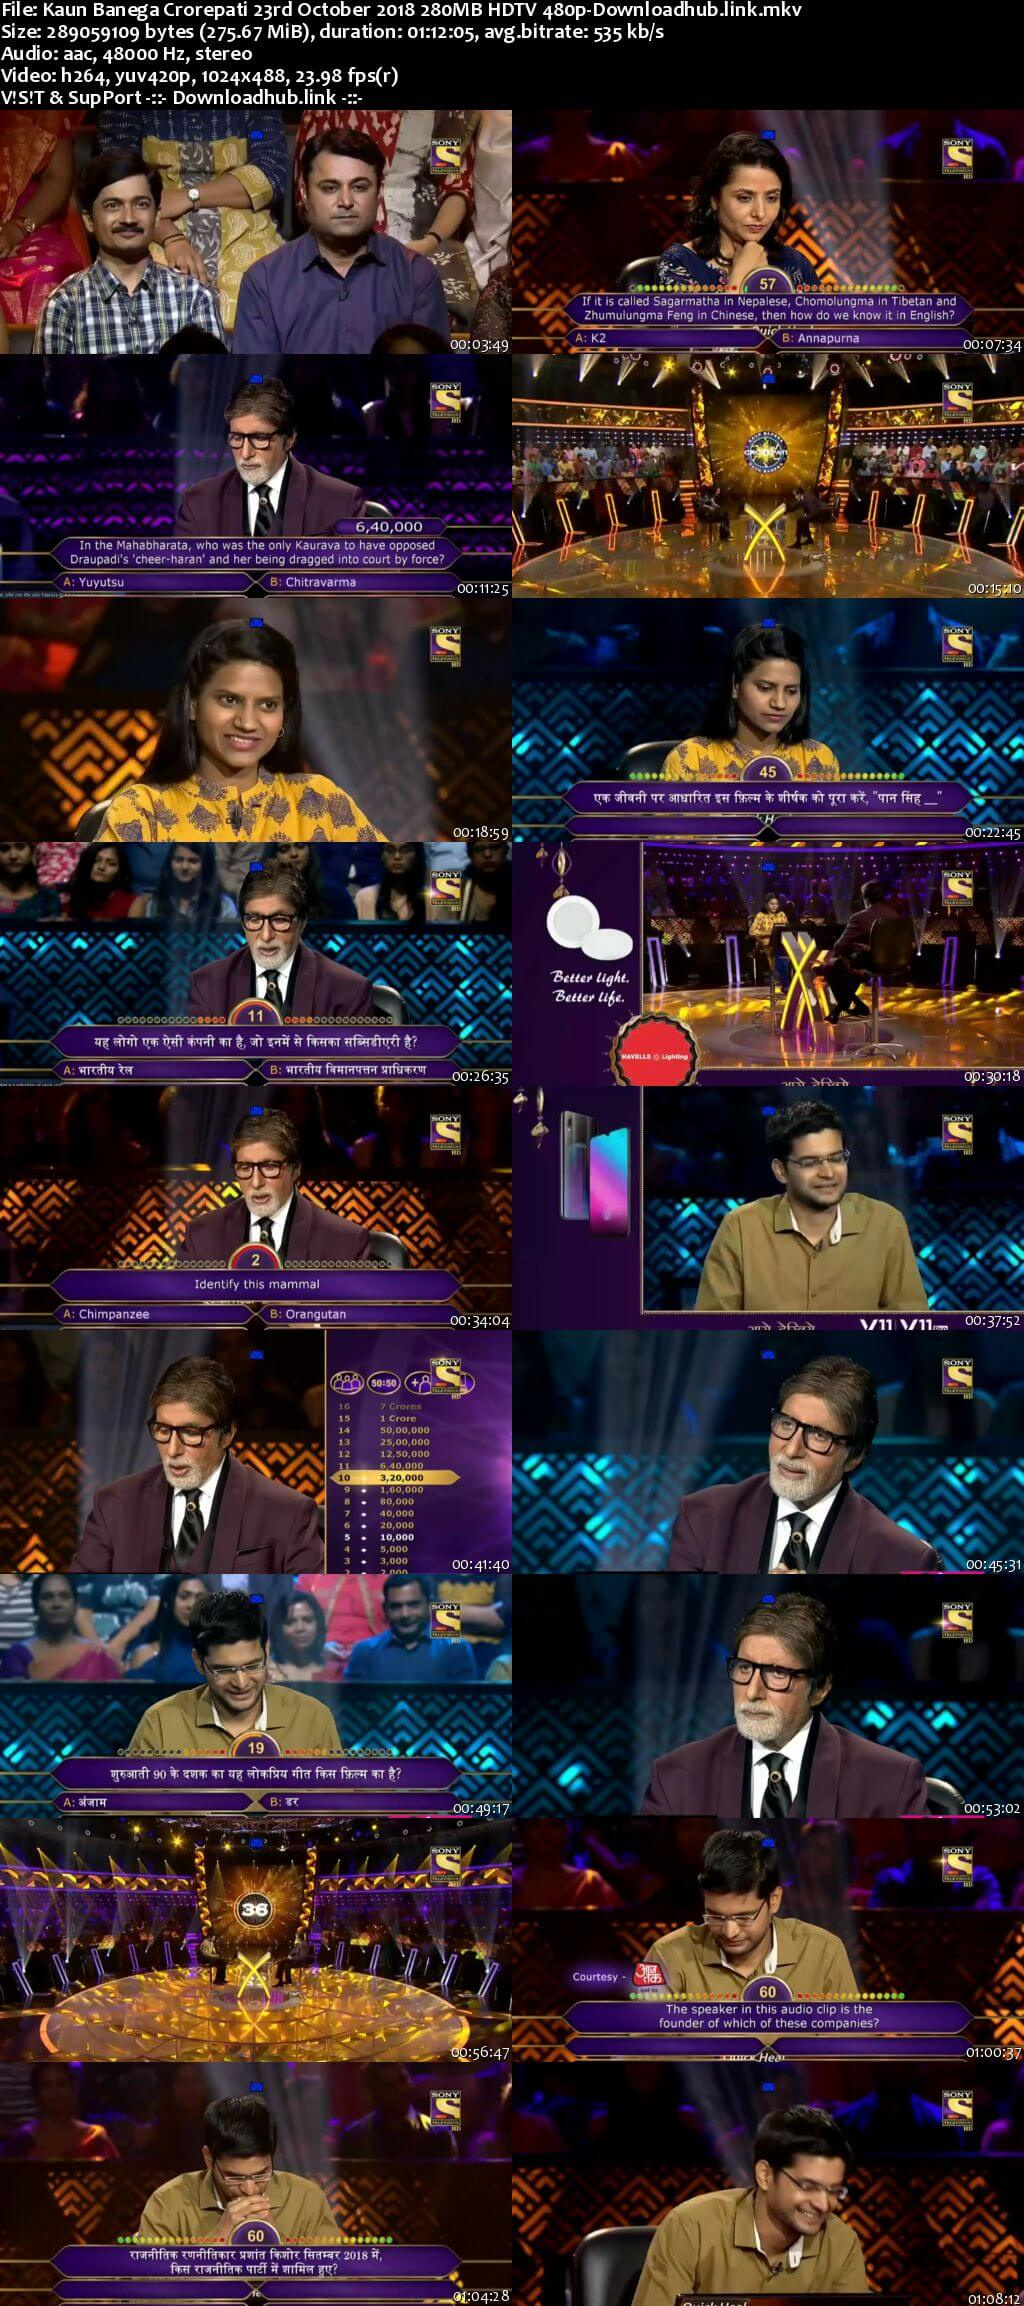 Kaun Banega Crorepati 23rd October 2018 280MB HDTV 480p